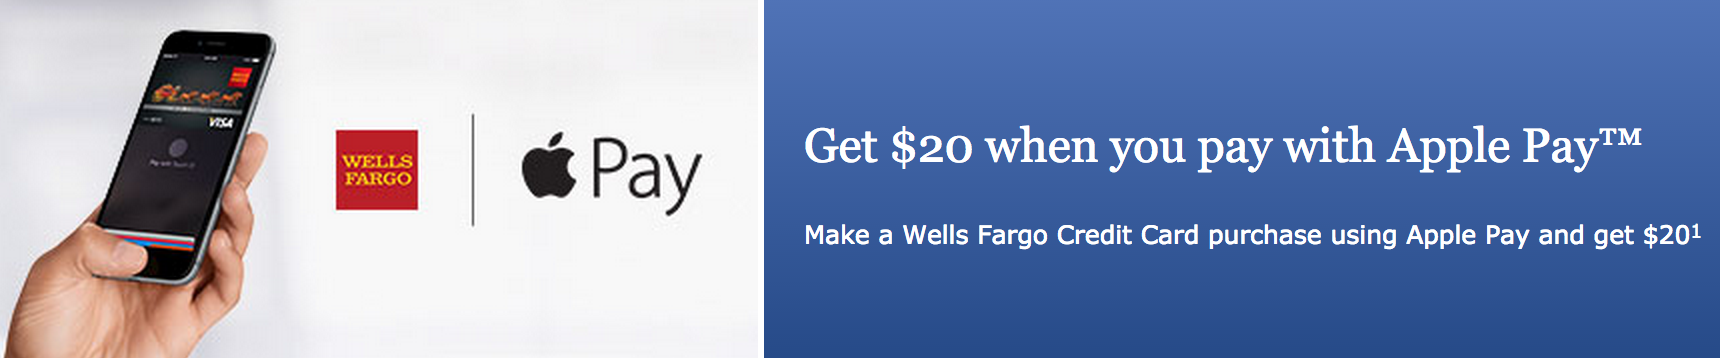 Wells Fargo Apple Pay